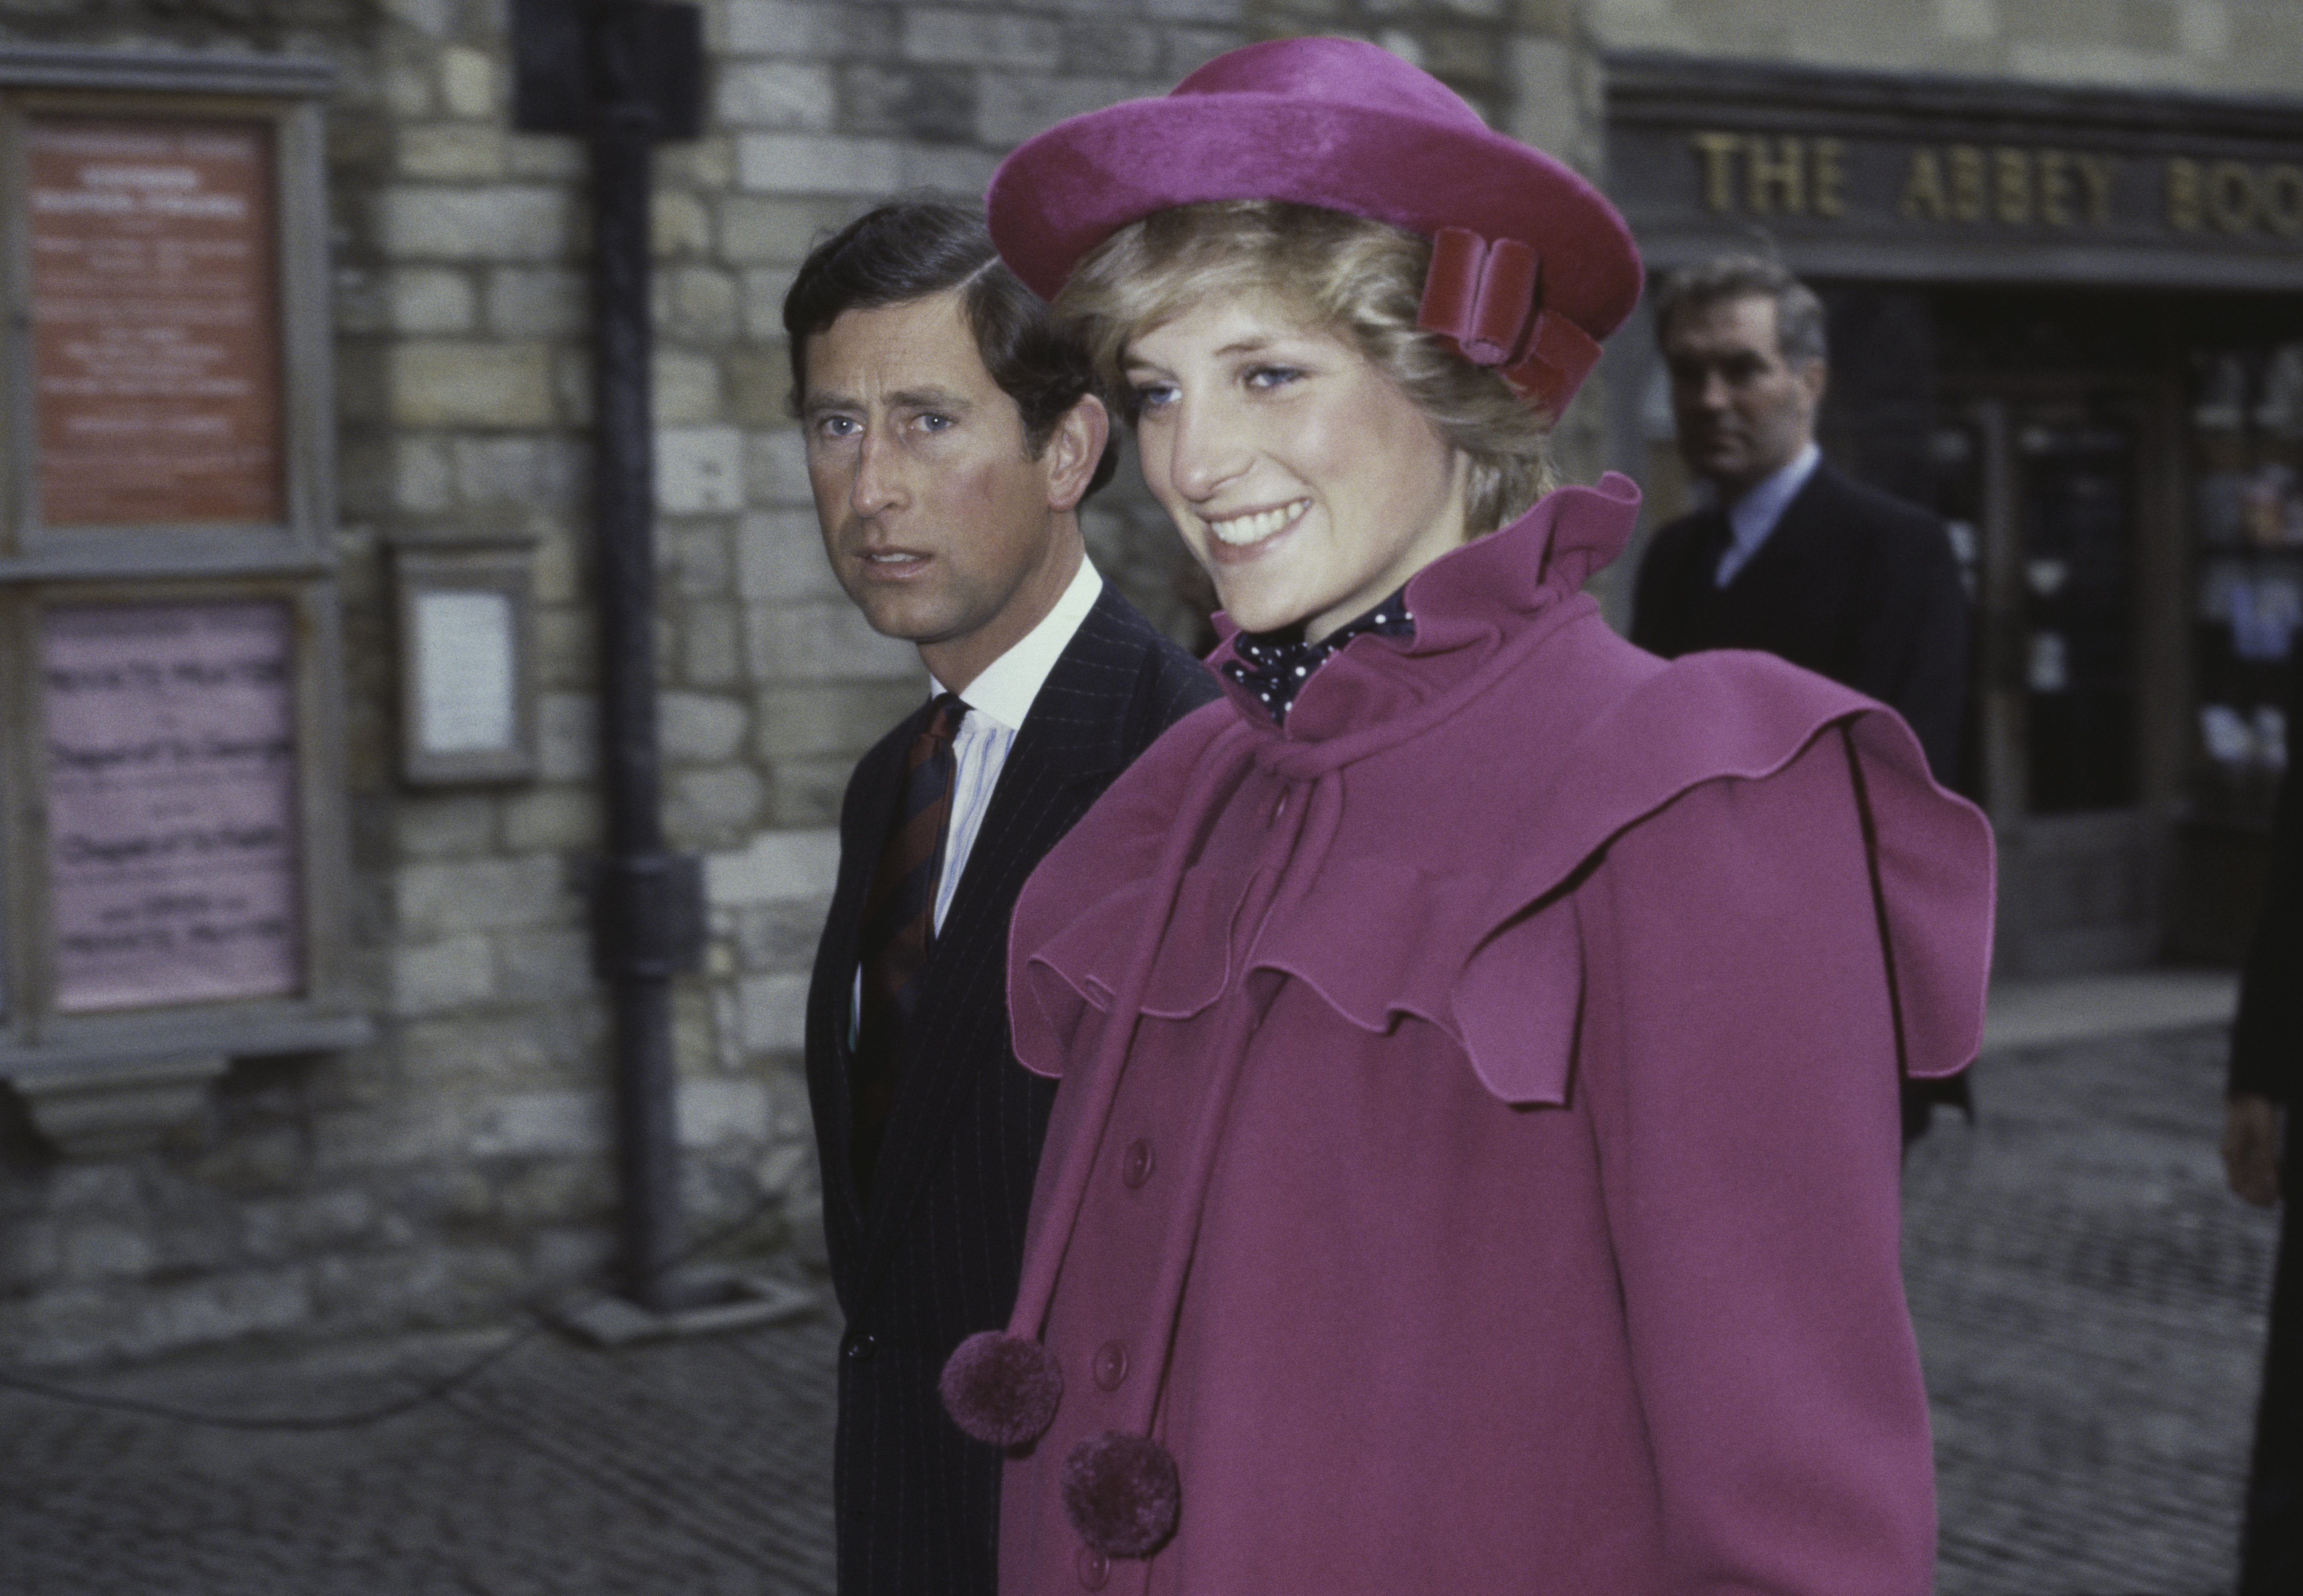 Prince Charles Facts